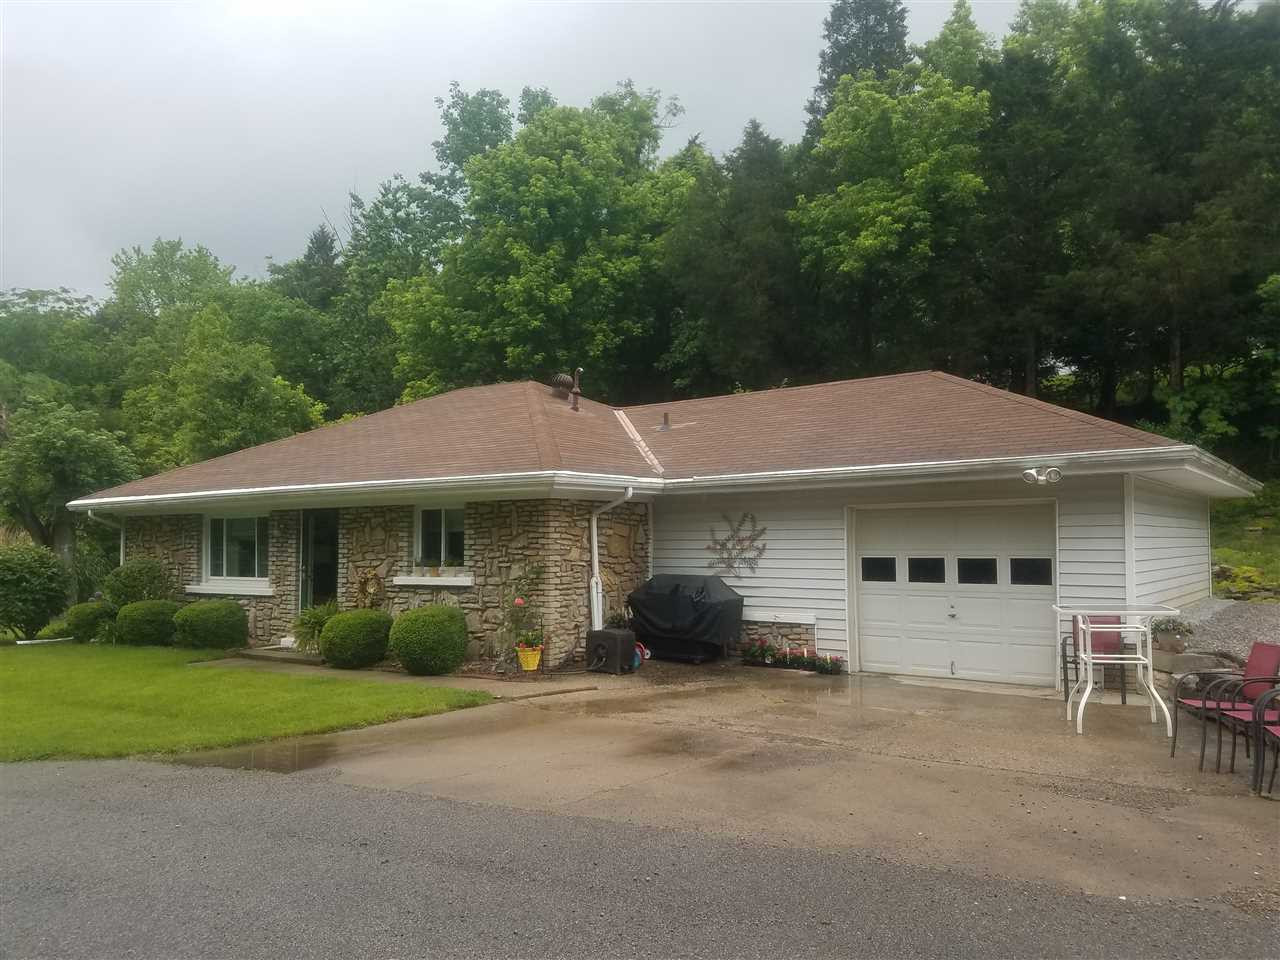 Photo 2 for 2306 Rust Dr Taylor Mill, KY 41017